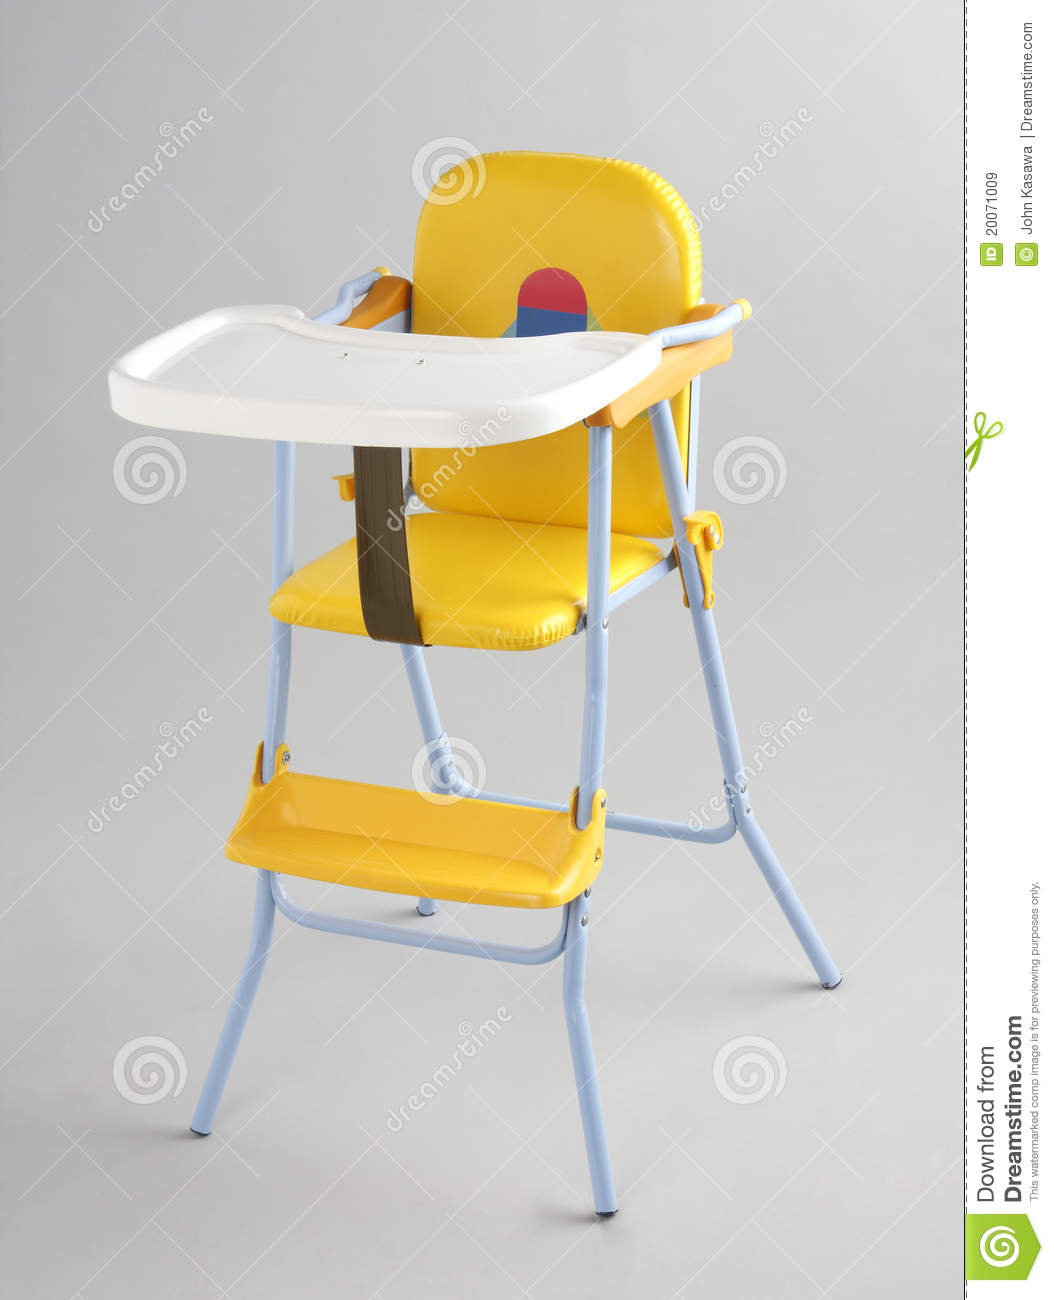 Baby Food Chair Baby Eating Food Chair Isolated Royalty Free Stock Images